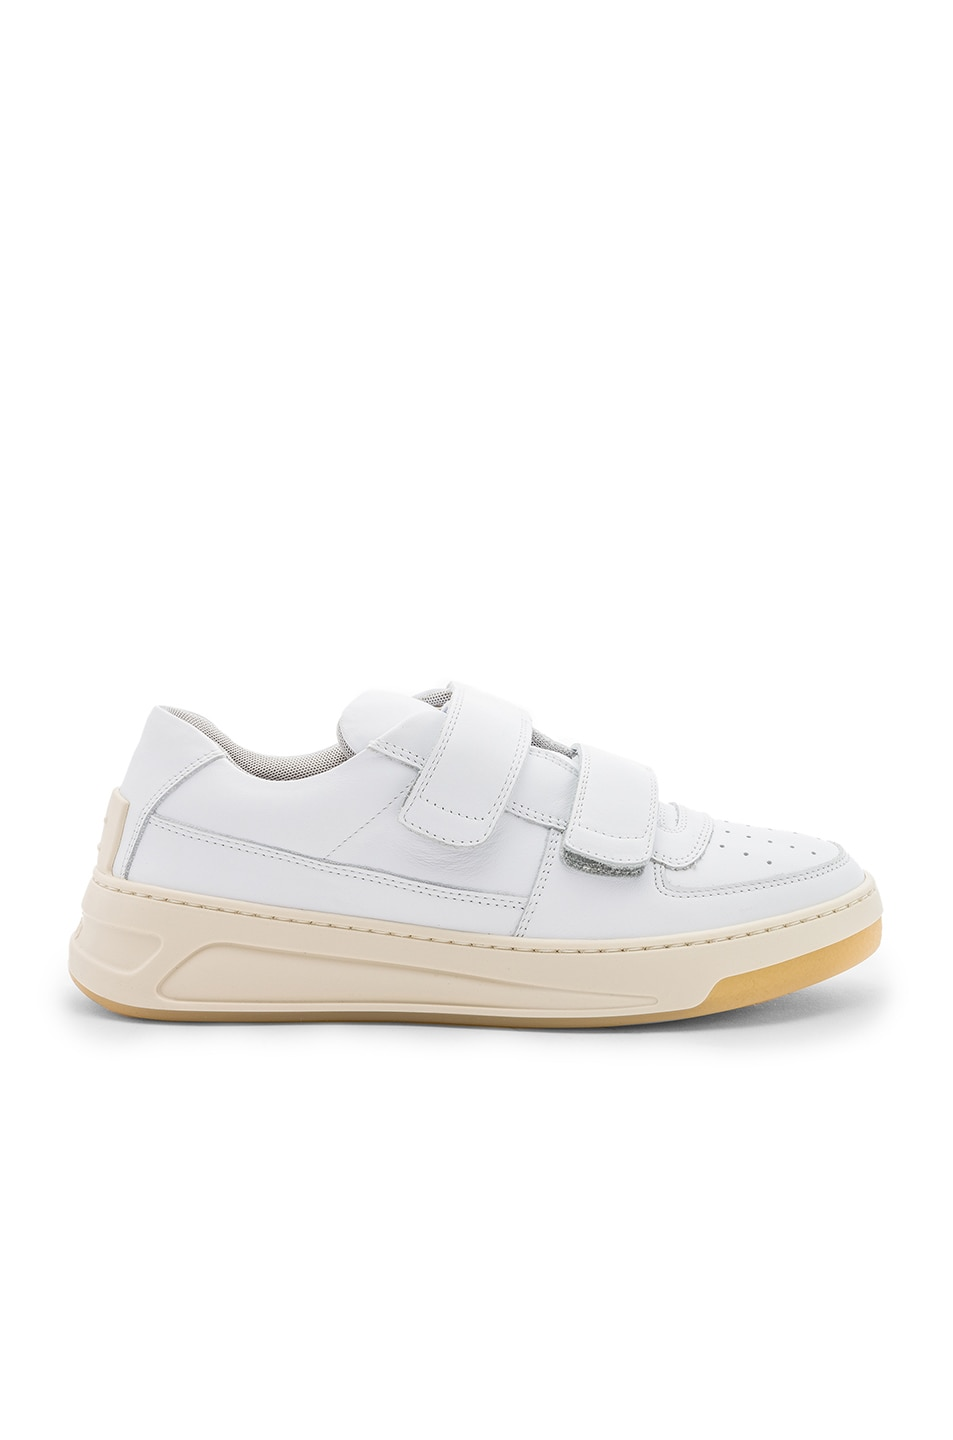 Acne Leather Pete Sneakers in . RT3fUch